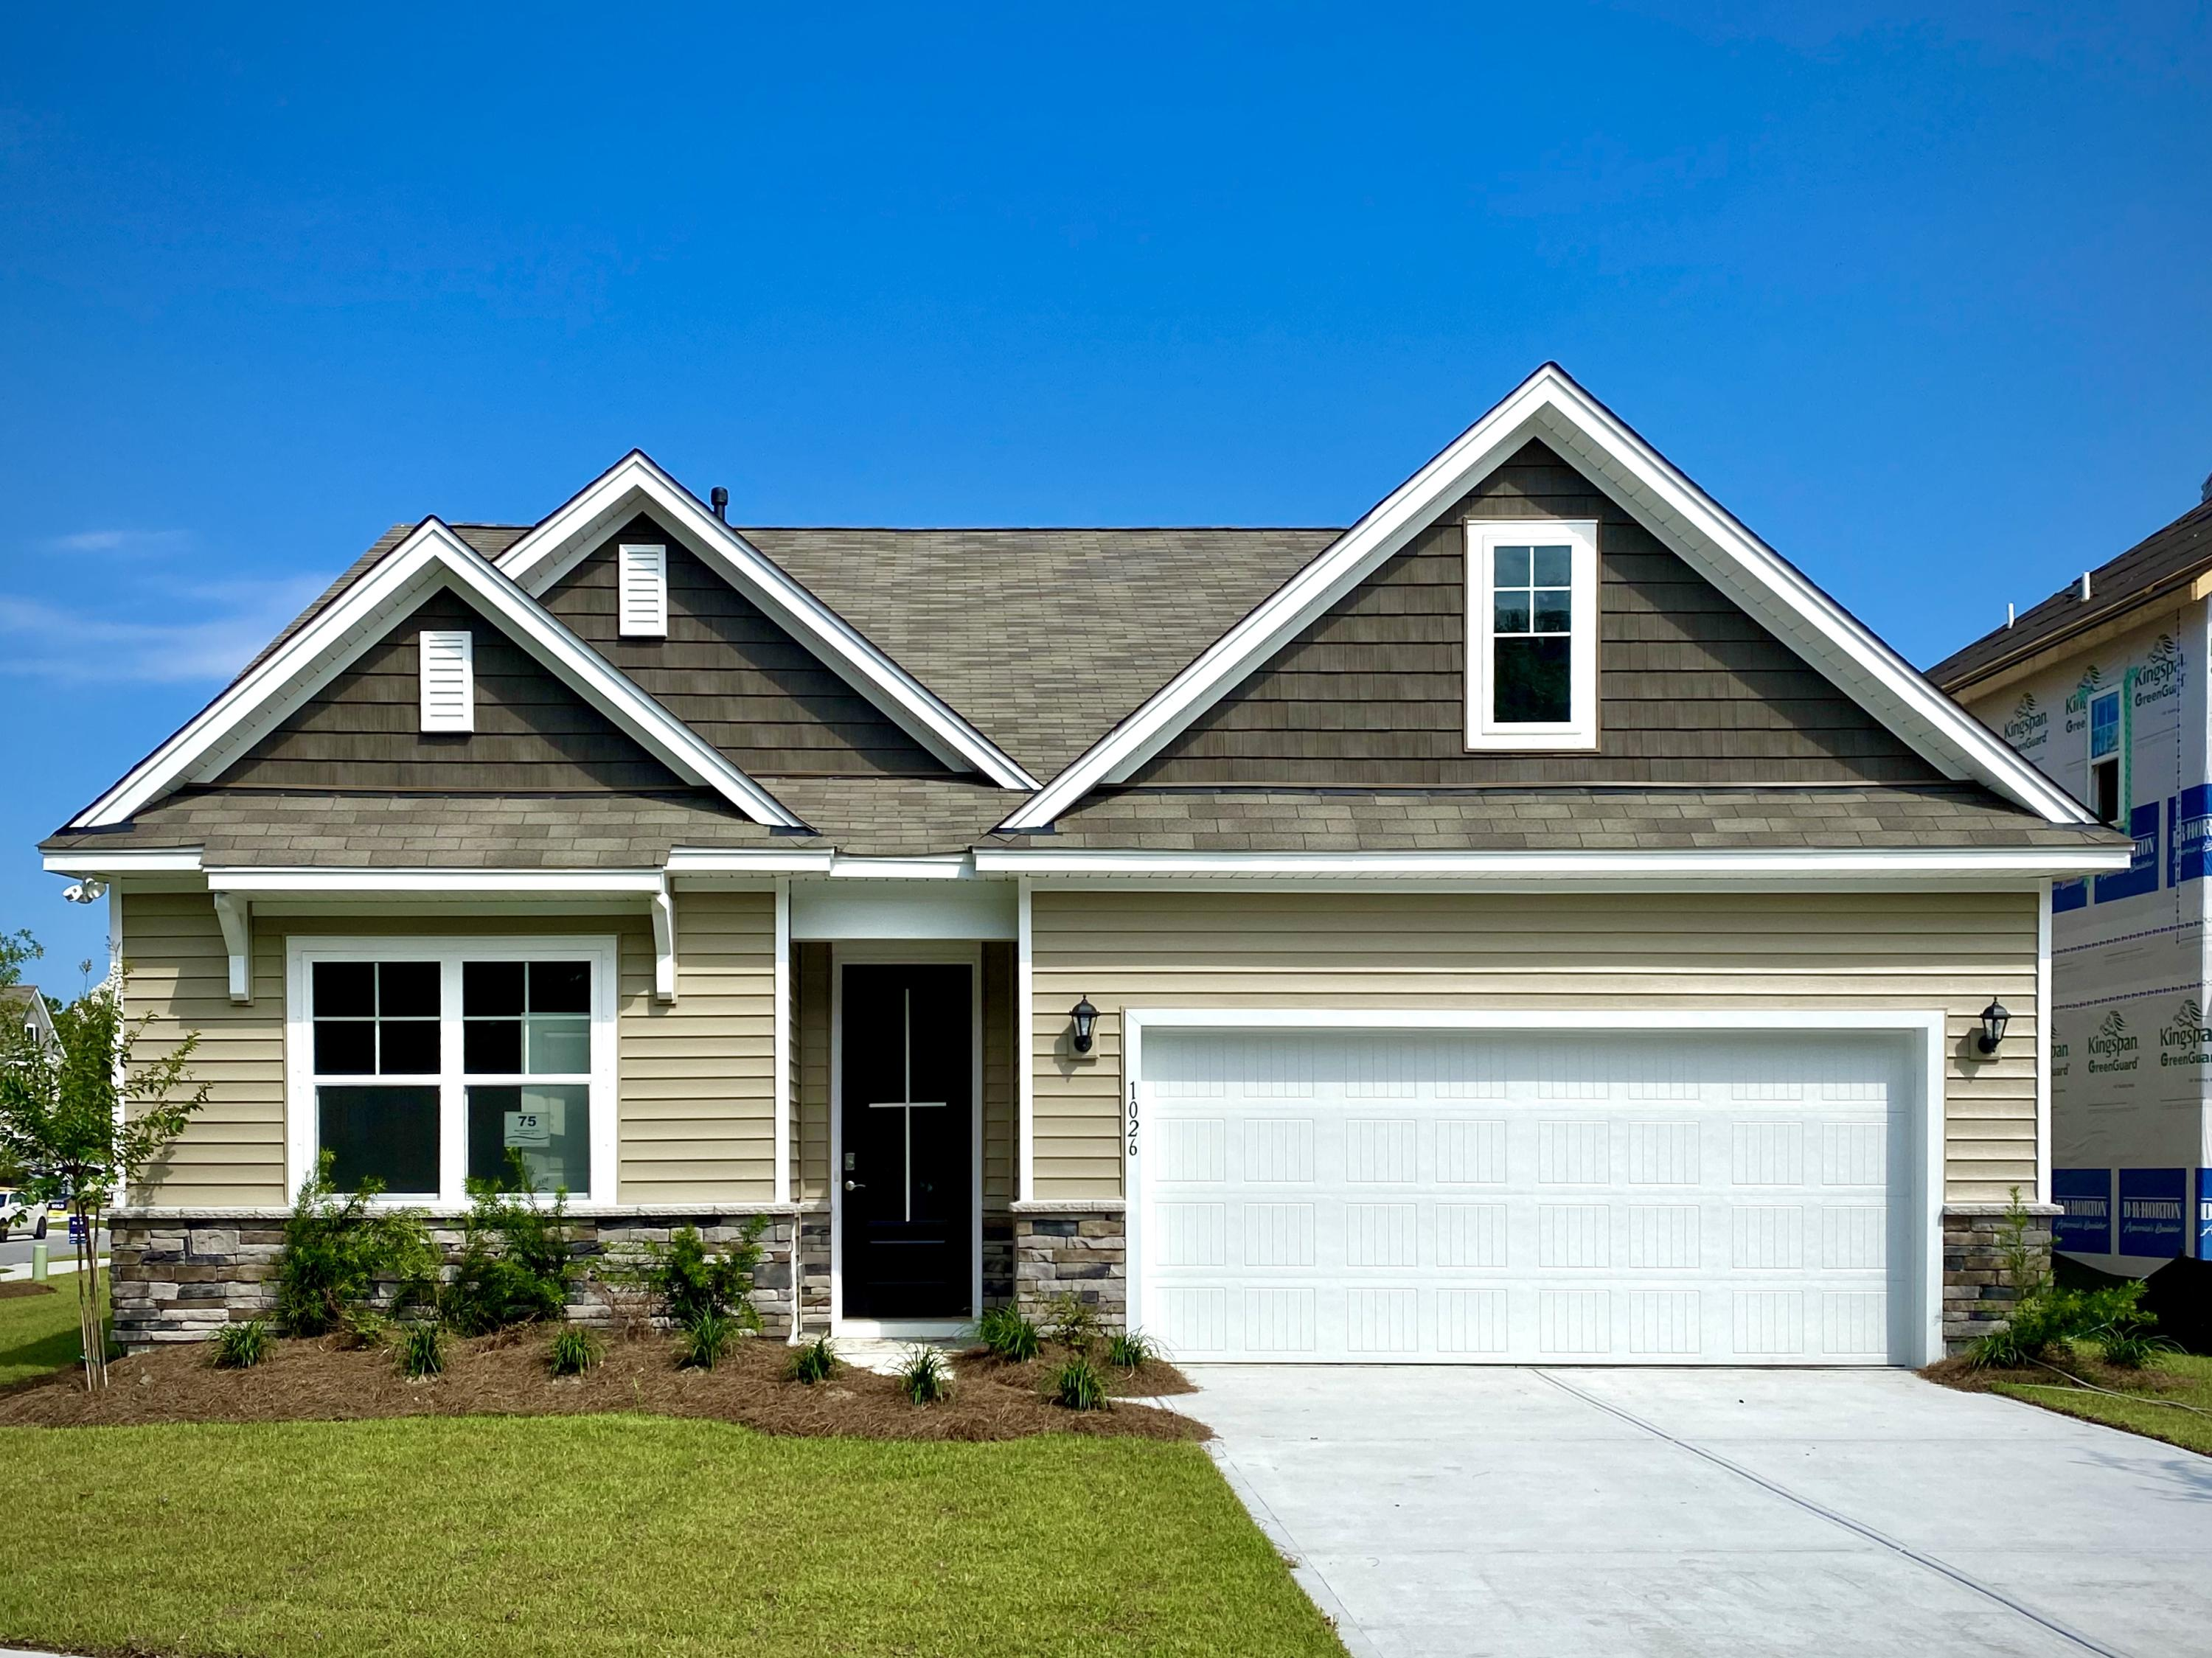 Bees Crossing Homes For Sale - 1026 Sago Palm, Mount Pleasant, SC - 0